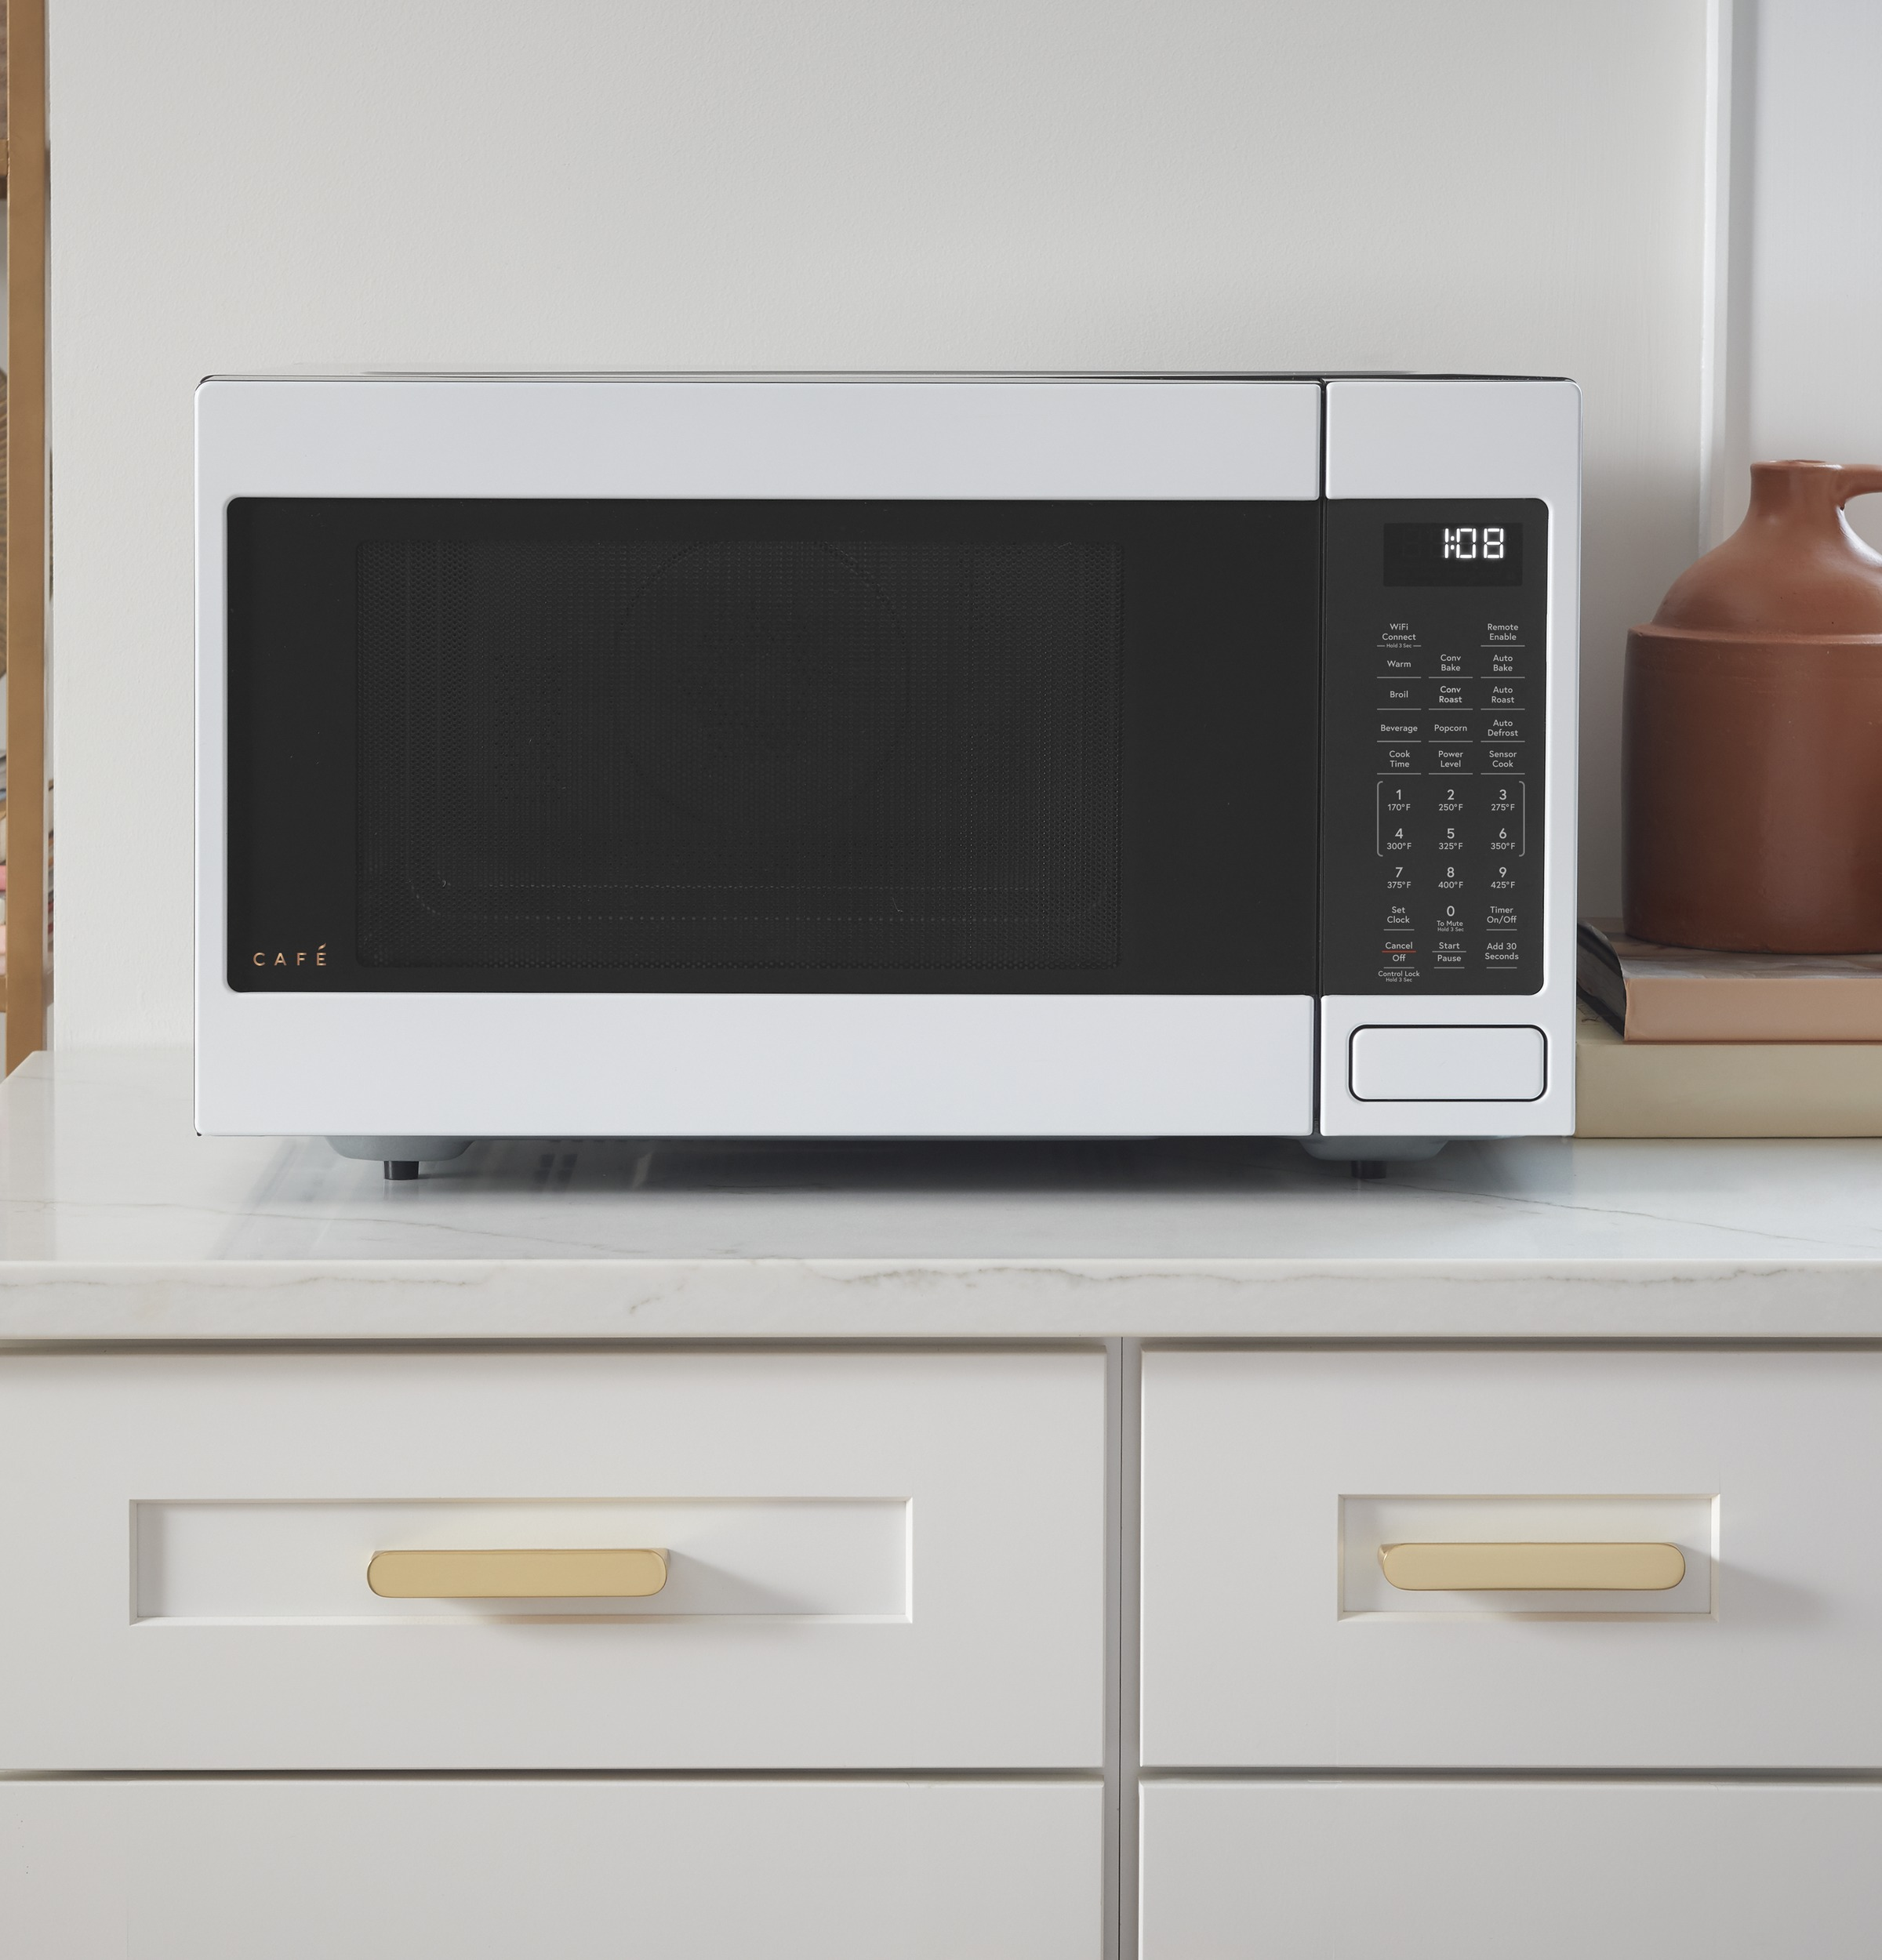 Model: CEB515P4NWM | Cafe Café™ 1.5 Cu. Ft. Smart Countertop Convection/Microwave Oven